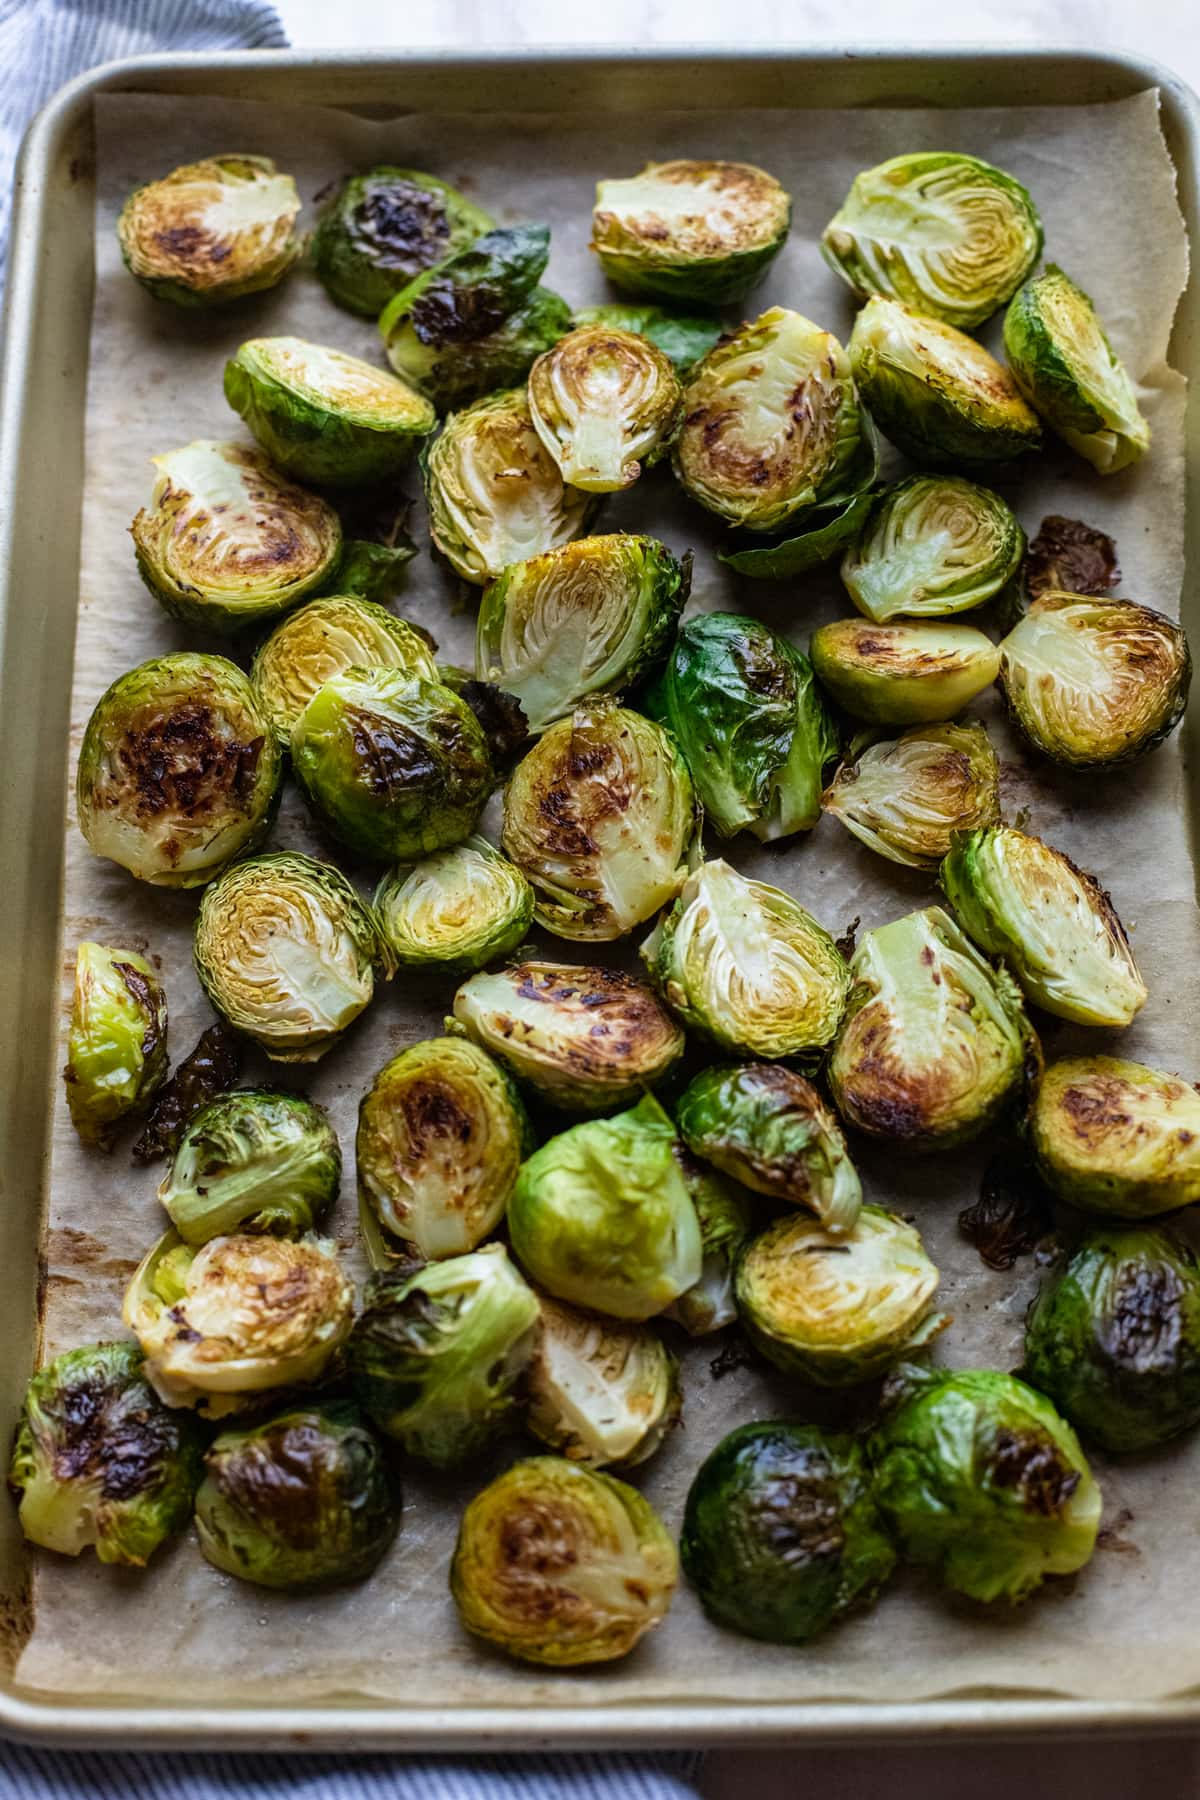 roasted brussels sprouts on gold baking sheet lined with parchment paper.